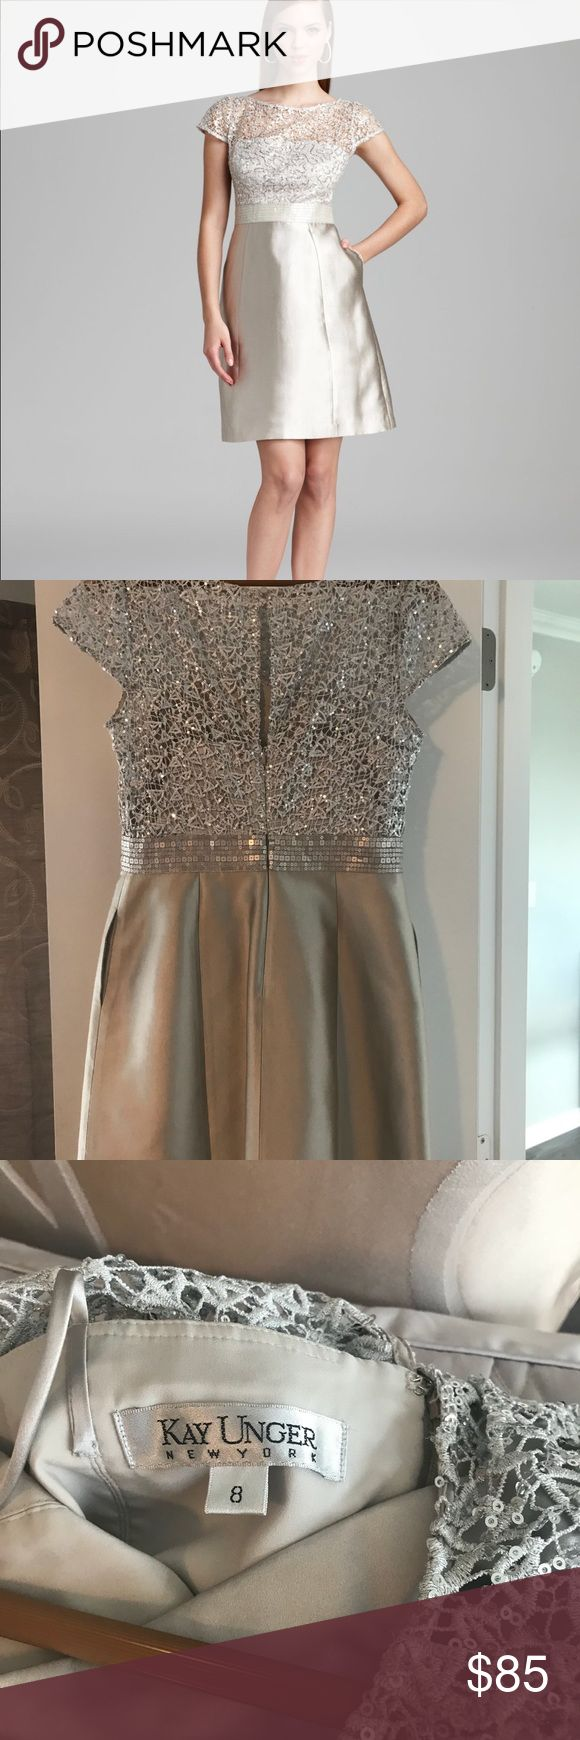 Kay Unger Cocktail Dress Kay Unger Women's Metallic Cocktail Dress Short Sleeve with Sequin Lace Overlay. Great for special occasions or holiday parties. Kay Unger Dresses